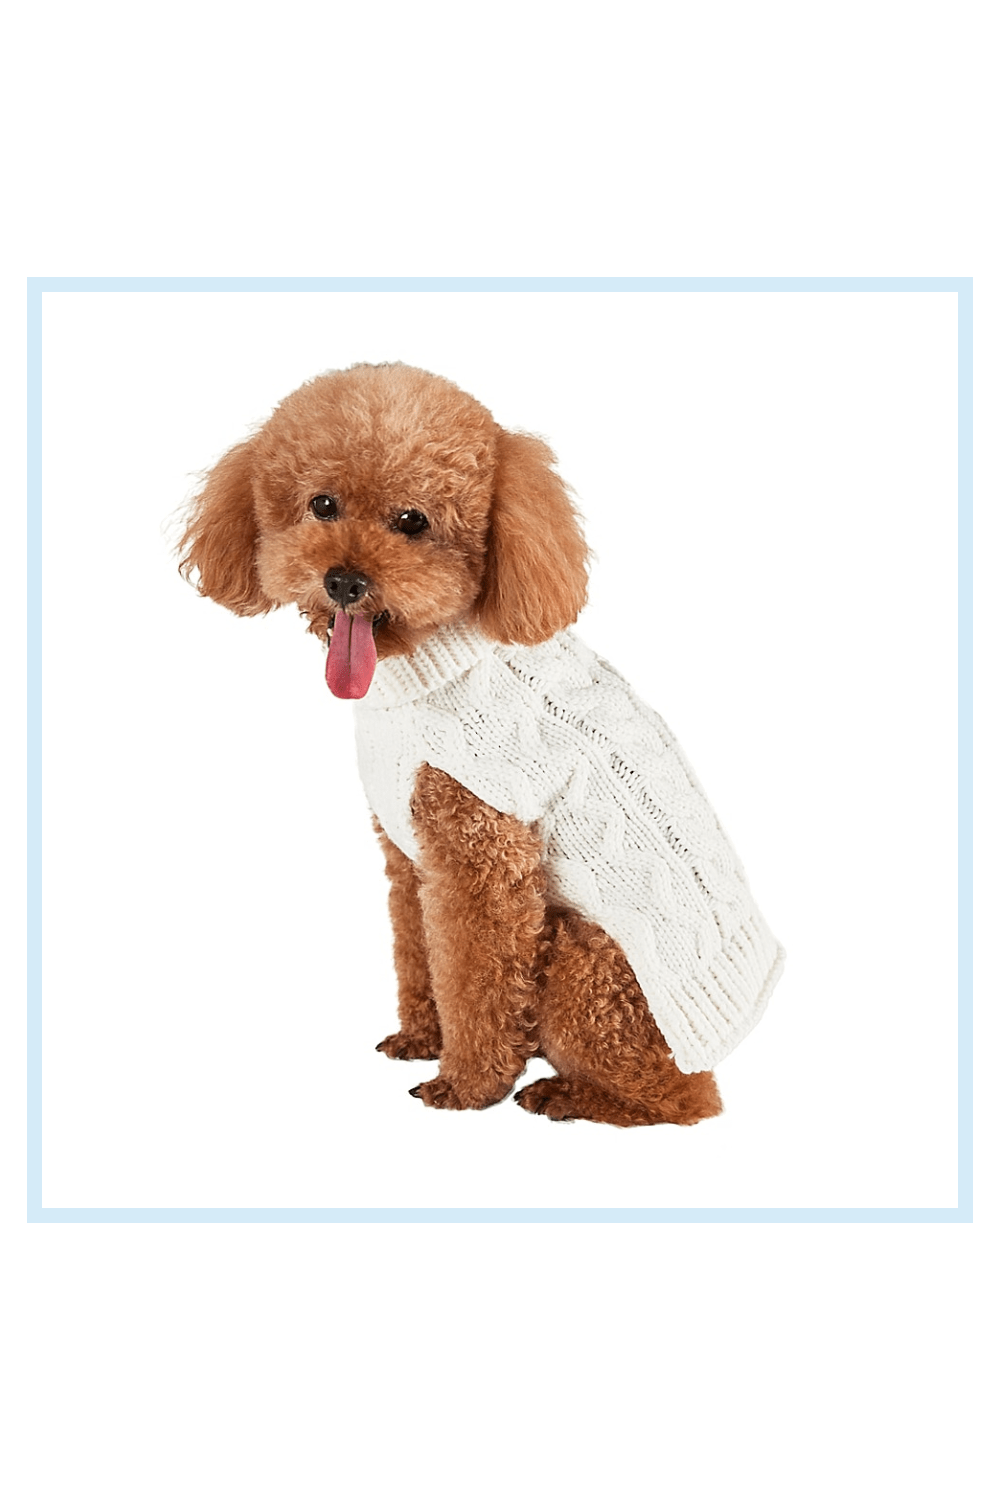 Bee & Willow Home Bee & Willow Home Medium Cable Knit Dog Sweater In White